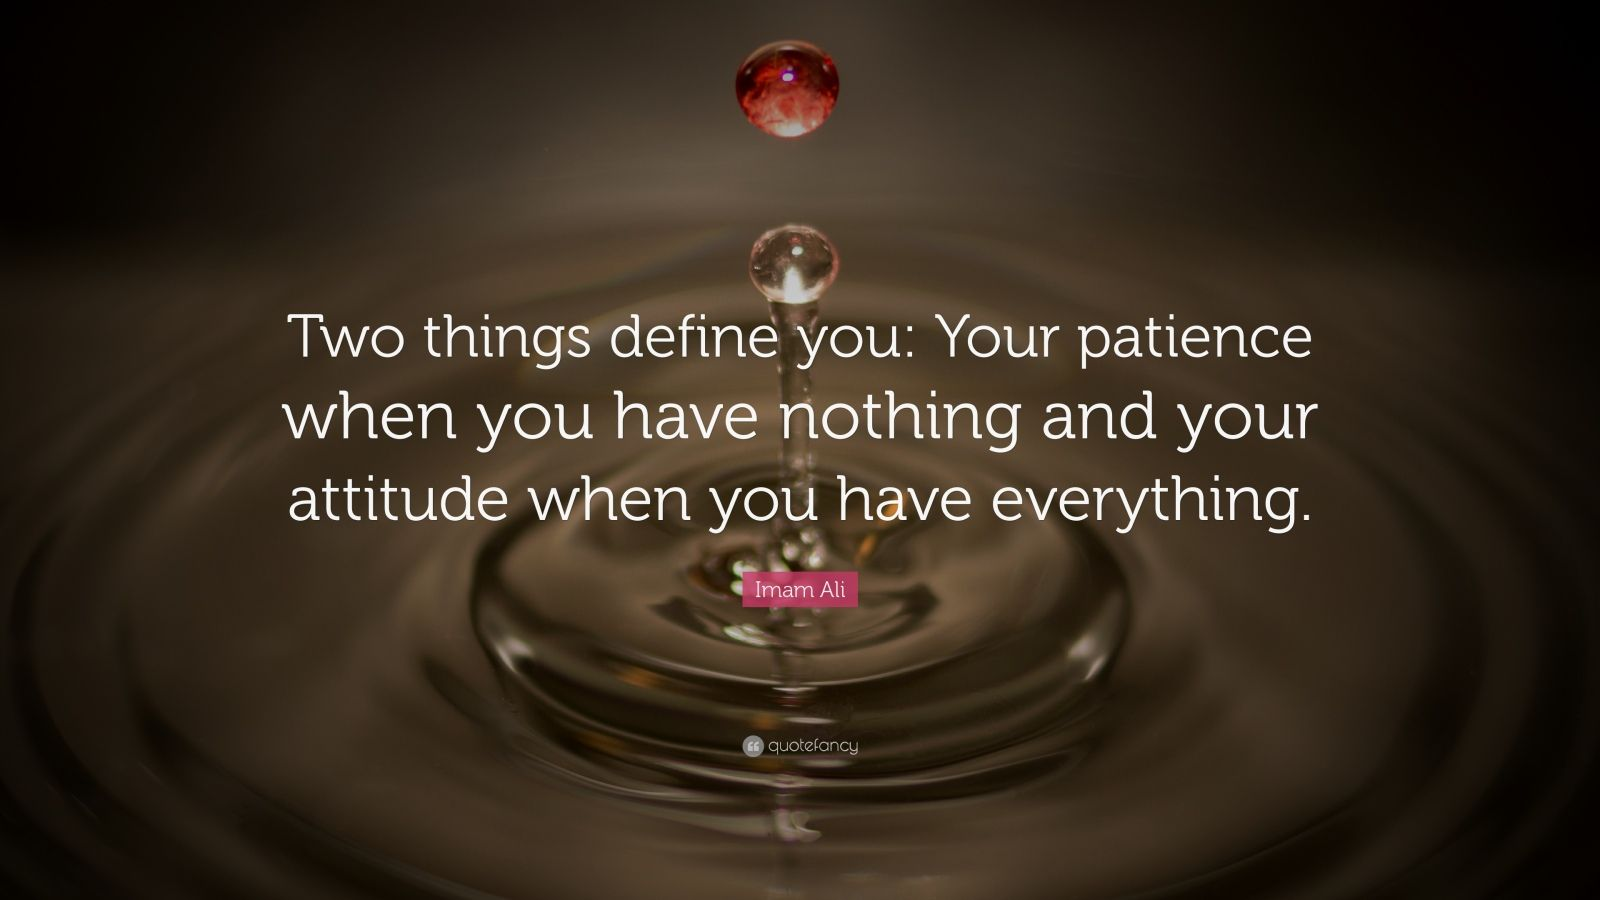 """Imam Ali Quote: """"Two things define you: Your patience when you have nothing and your attitude when you have everything."""""""